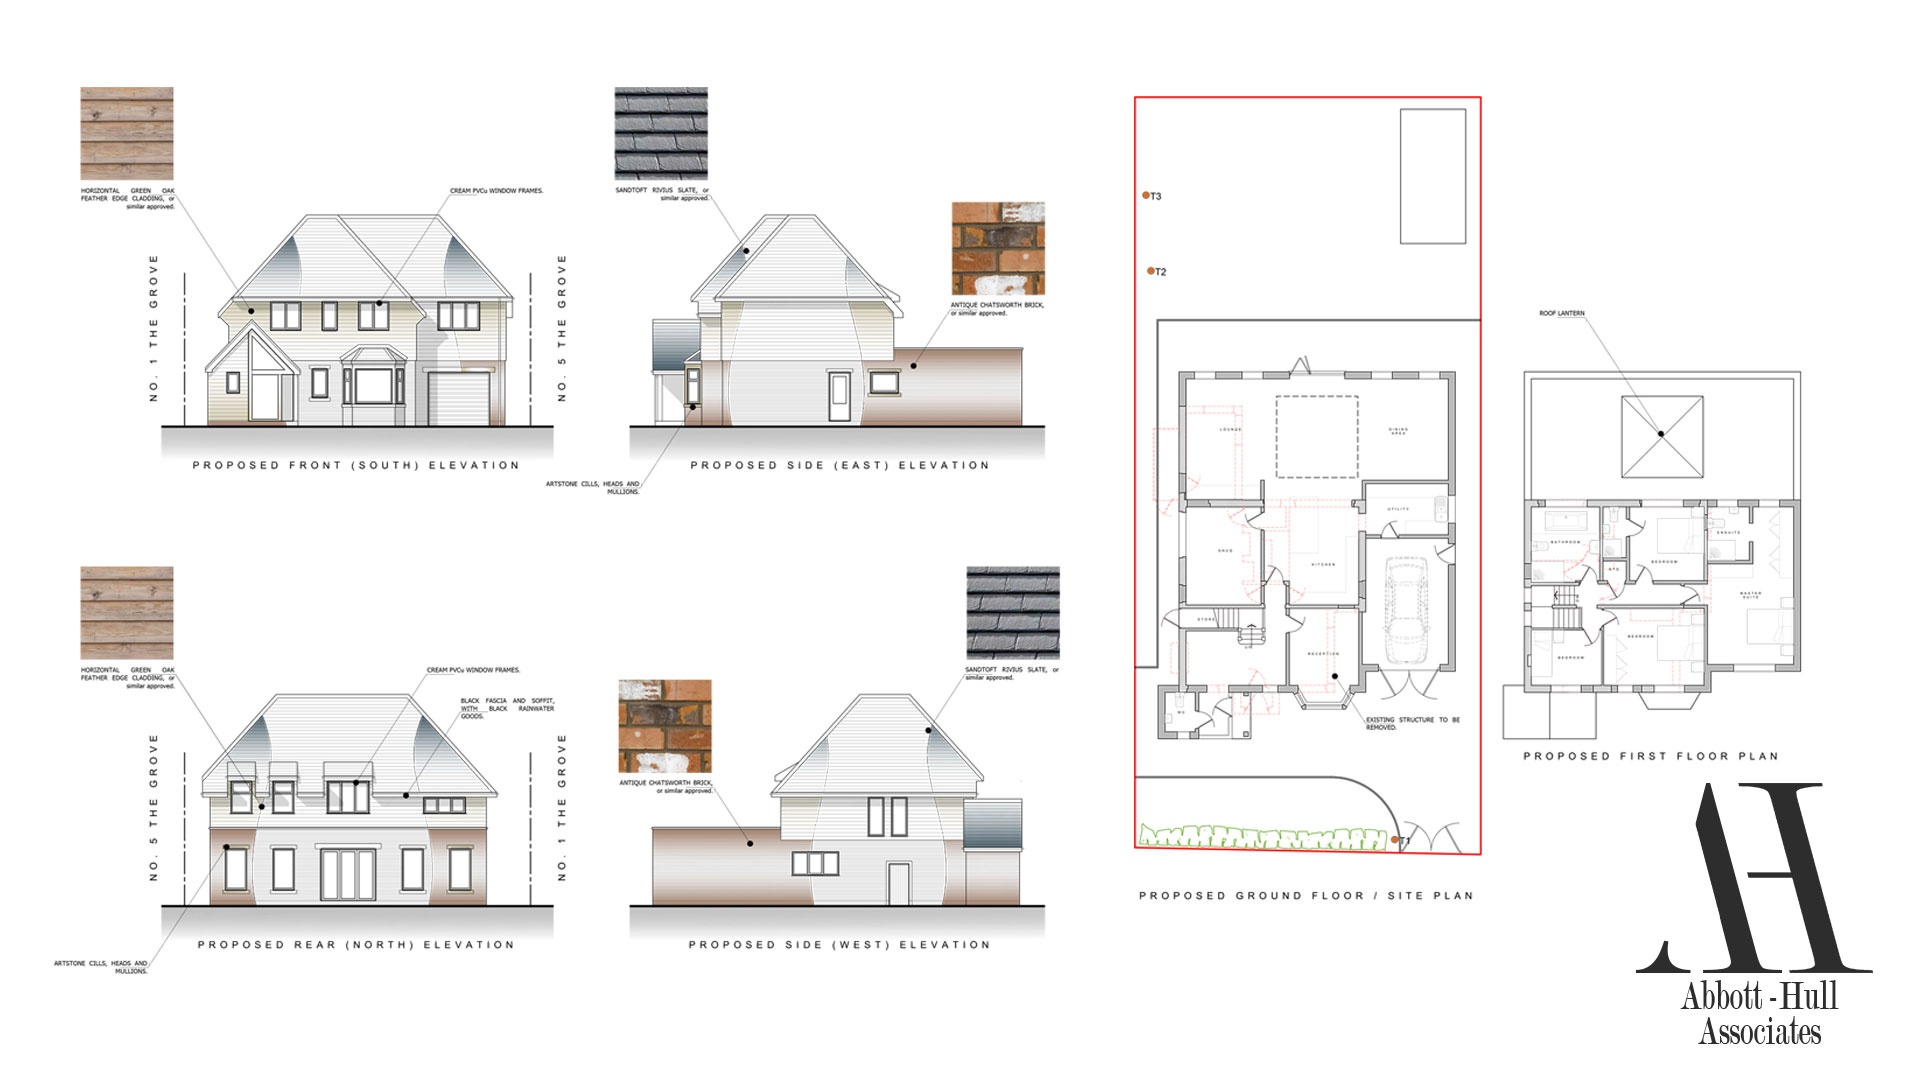 The Grove, Thornton-Cleveleys, House Renovation - Proposed Plans and Elevations